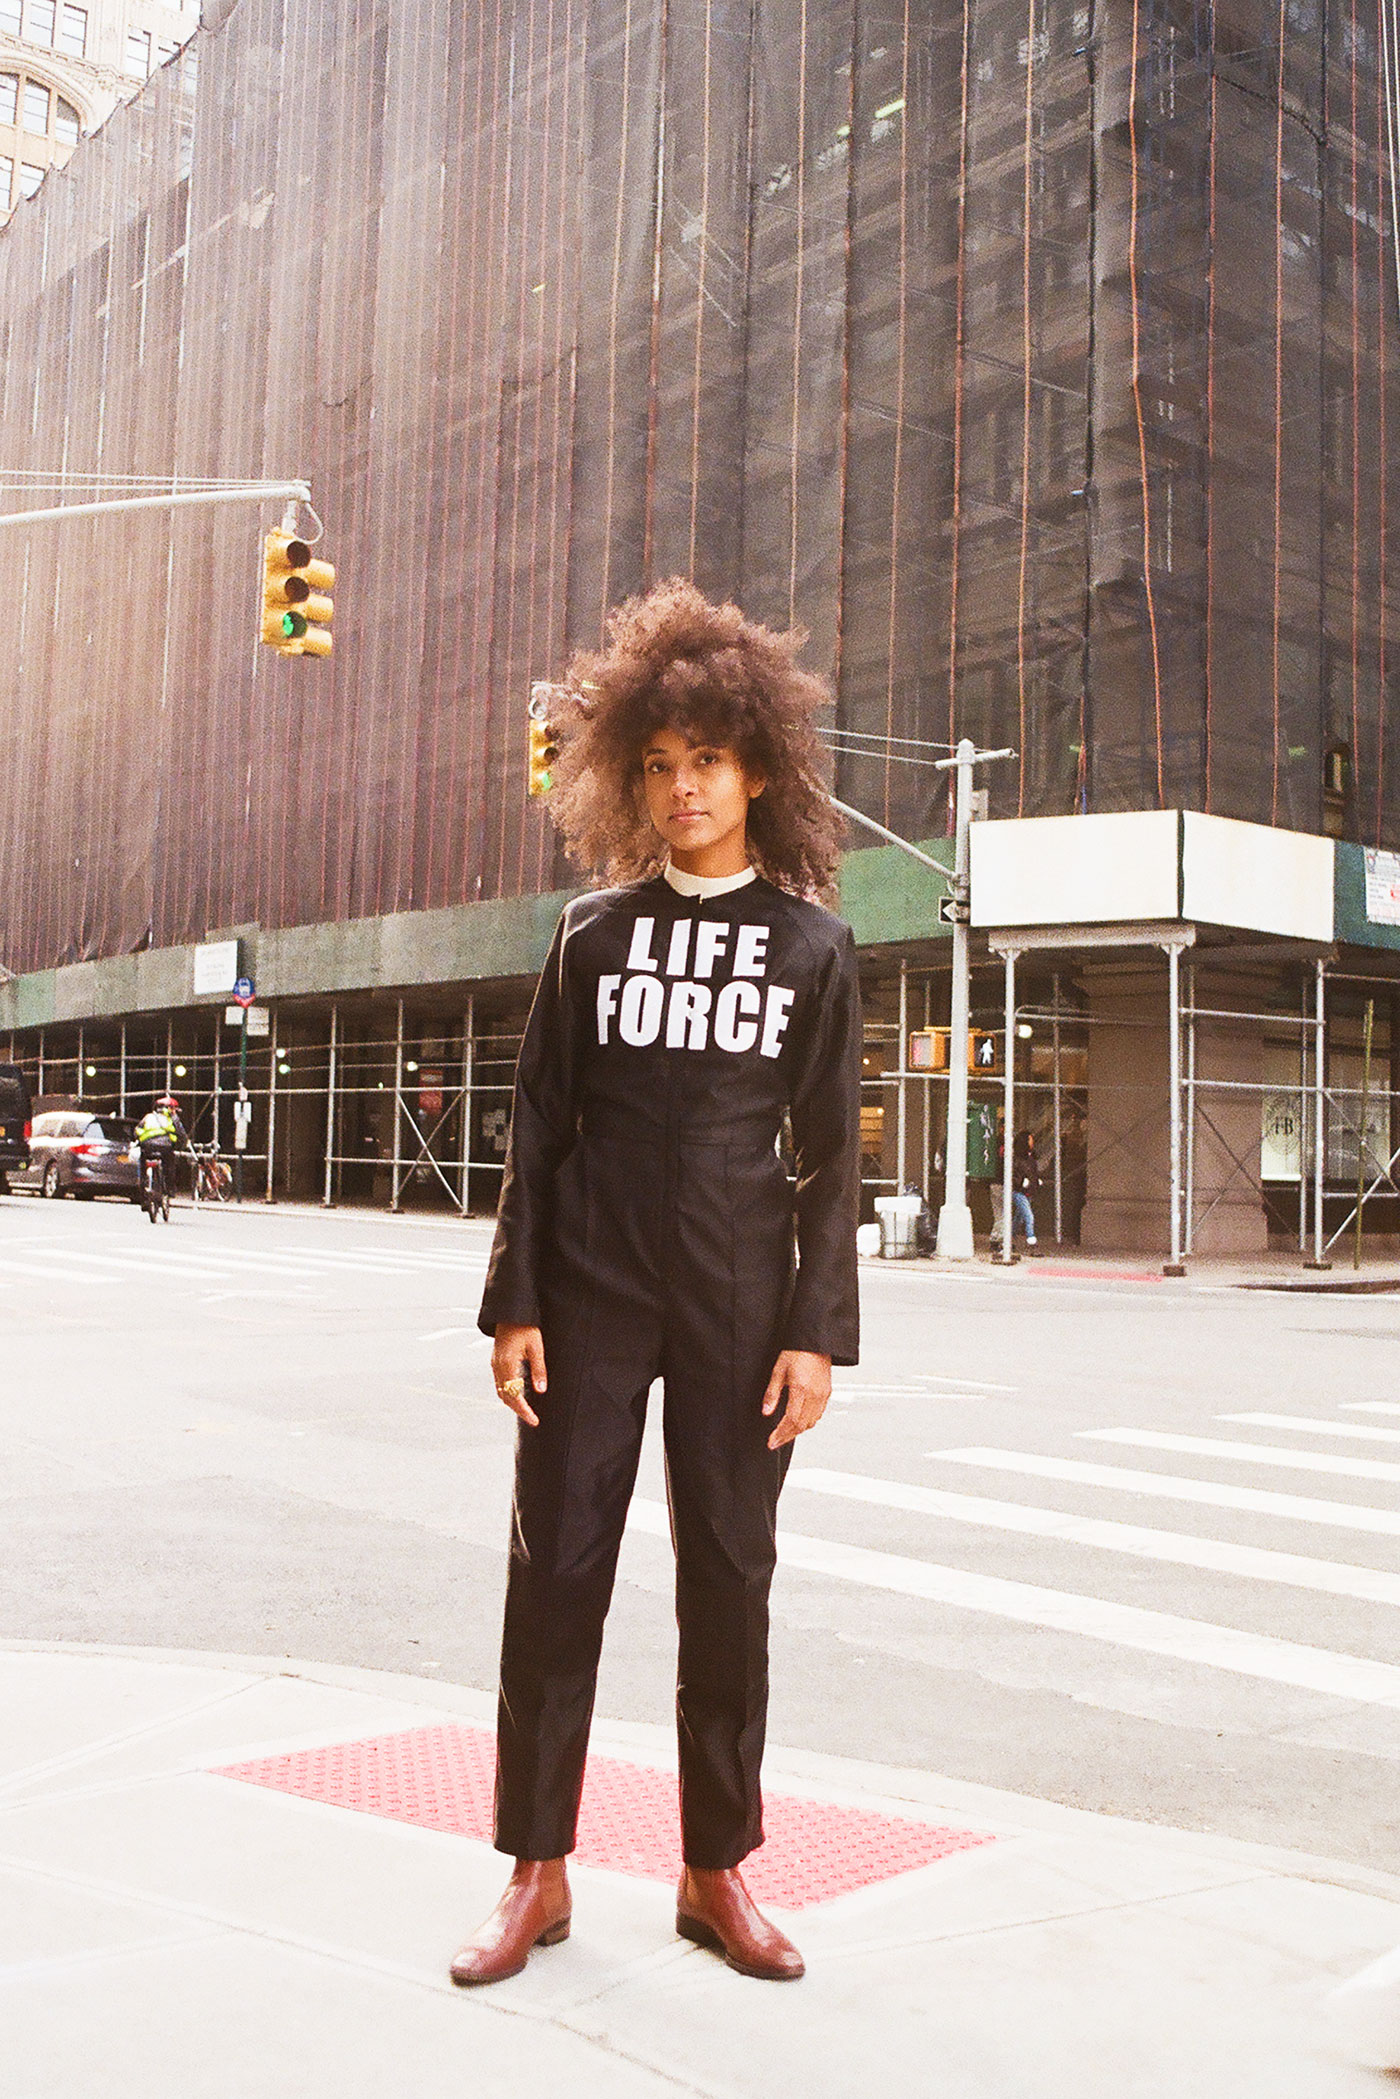 The Life Force of Esperanza Spalding | Page 5 | Office Magazine